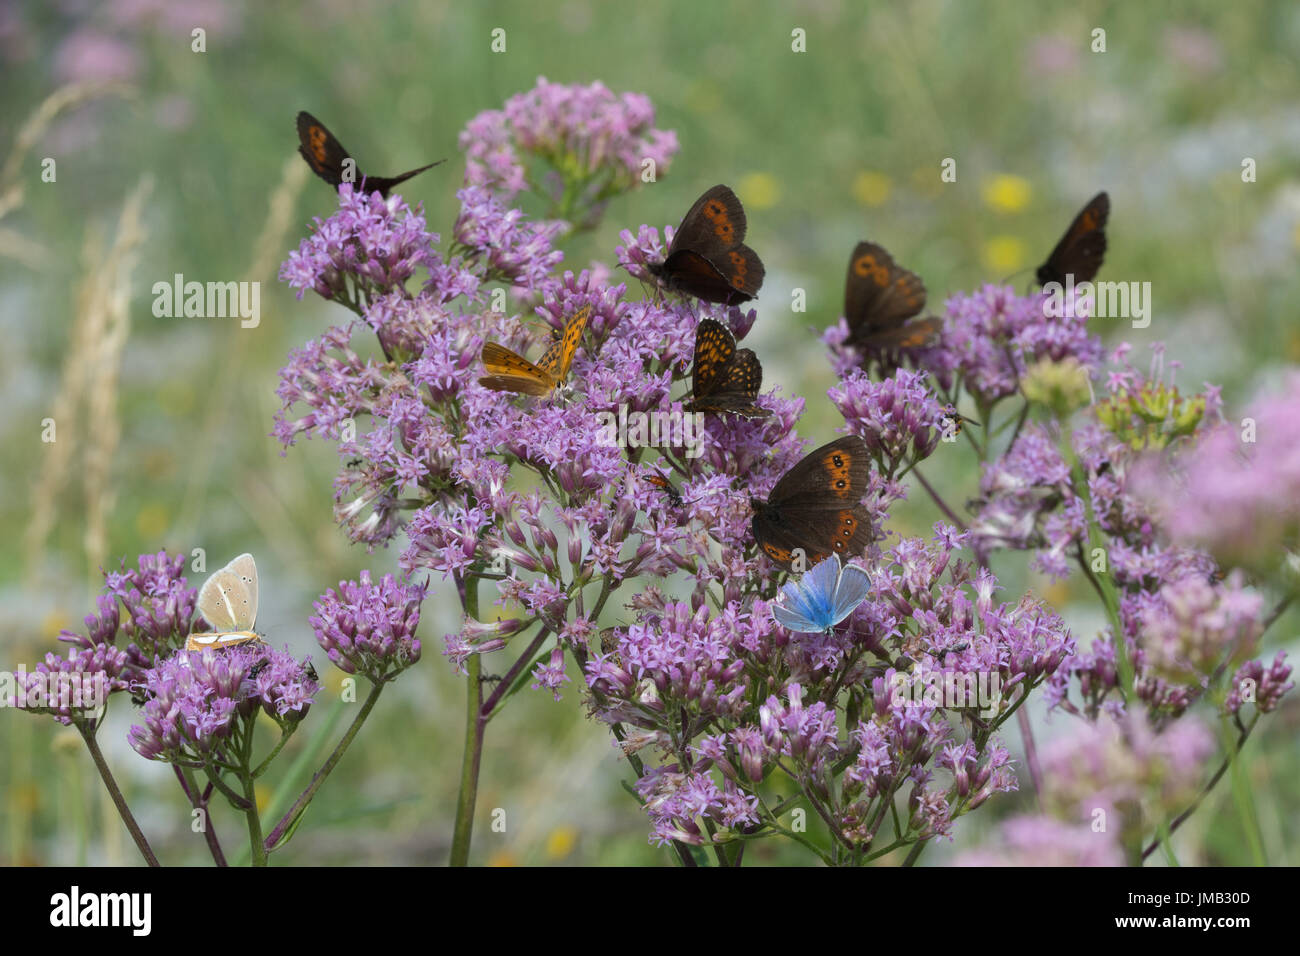 Large number of butterflies of mixed species nectaring on pink valerian wildflowers in the French Alps - Stock Image